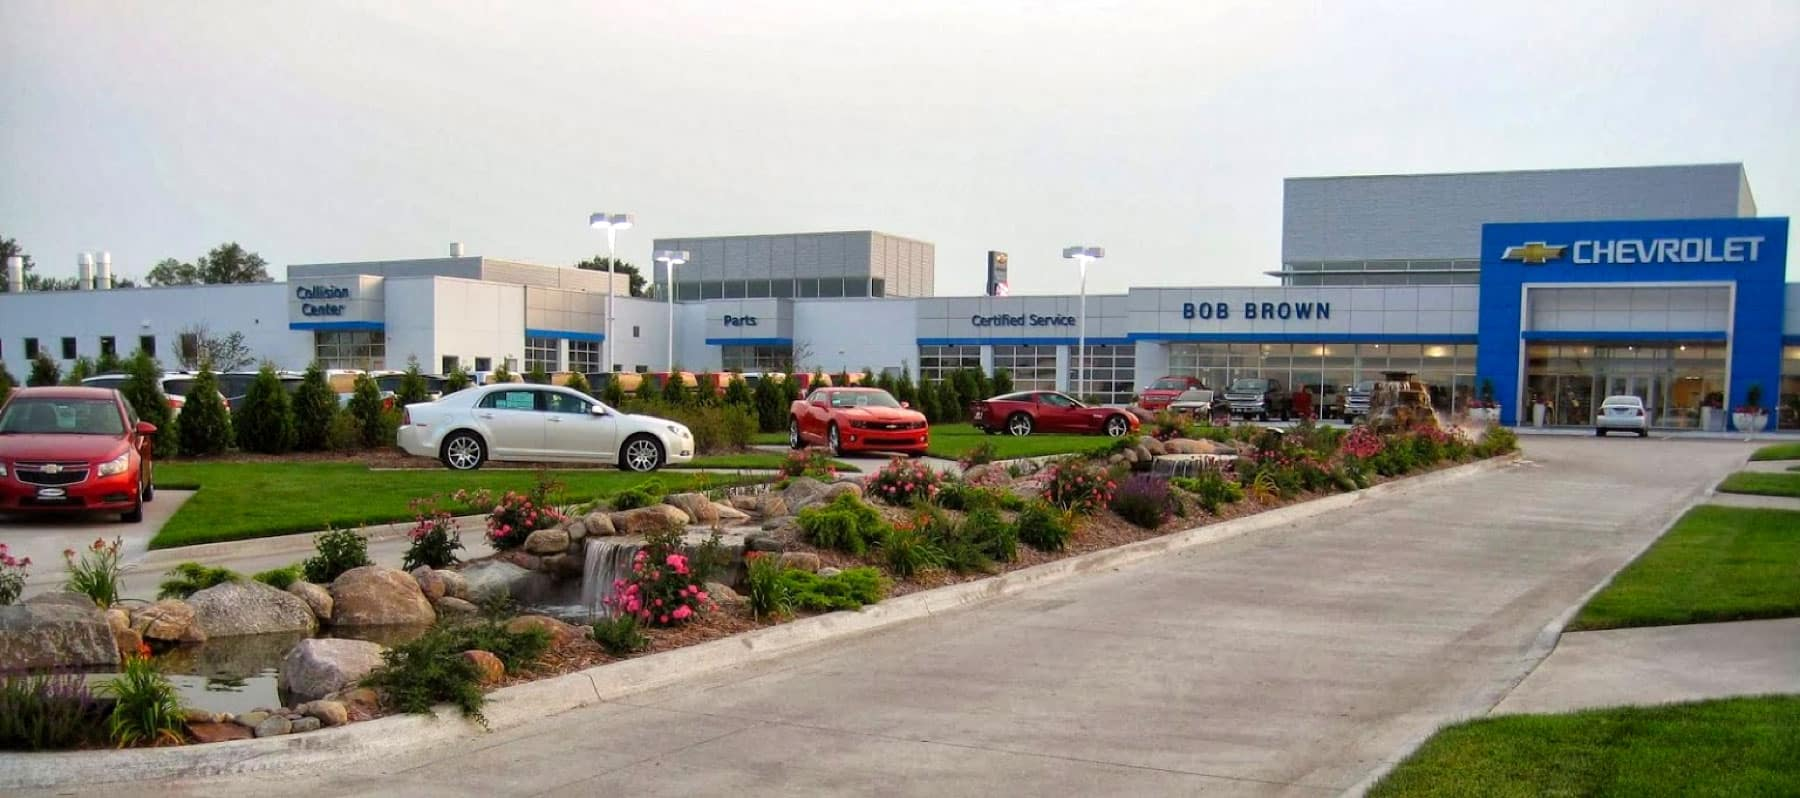 Exterior photo of dealership